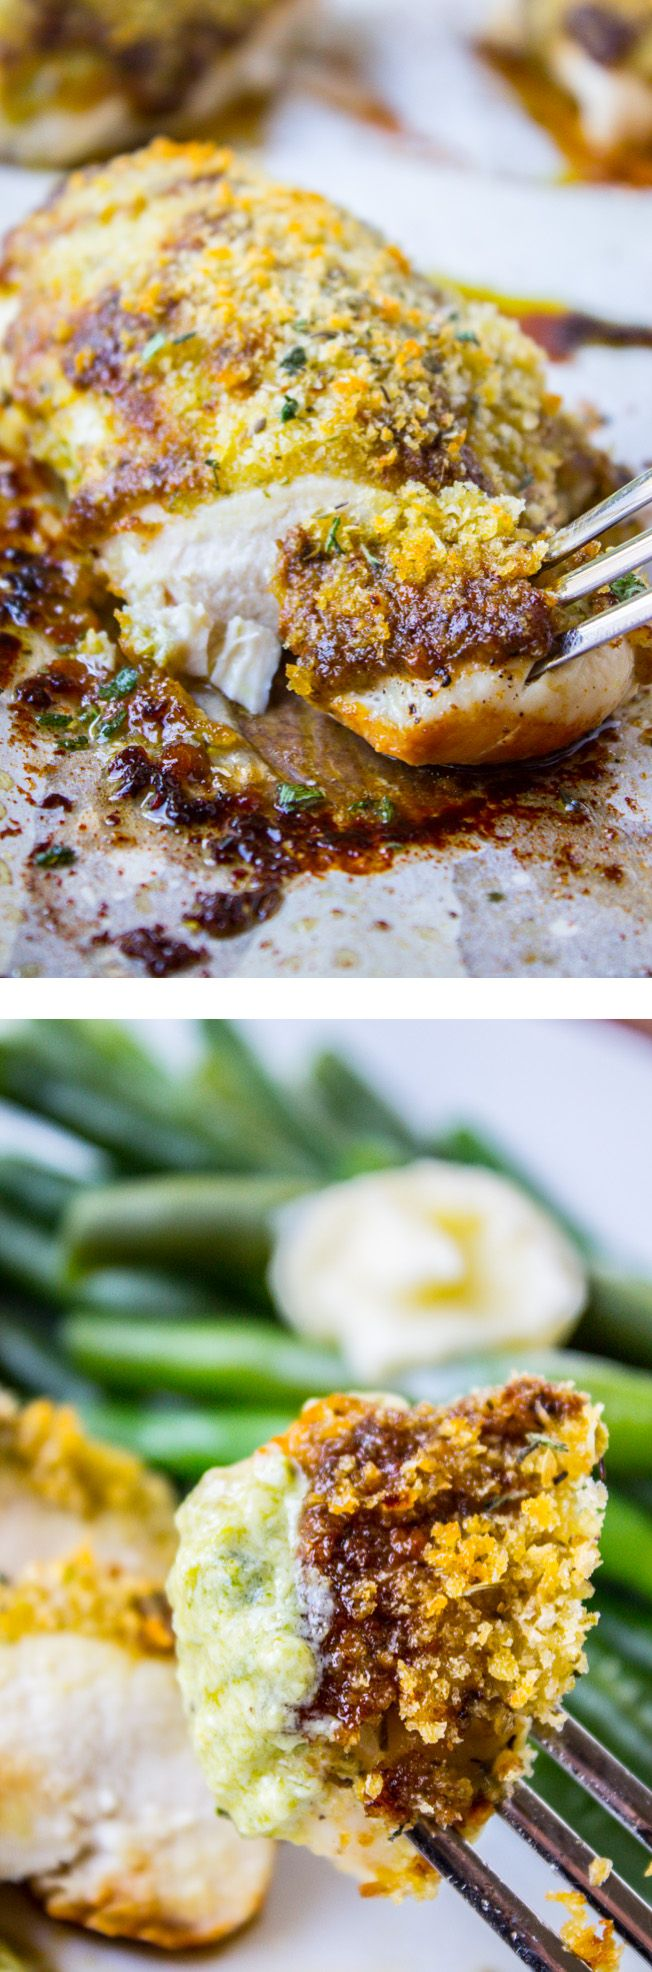 Easy Baked Pesto Chicken from The Food Charlatan // 30 minutes and 4 ingredients! Can't beat that. #HungerIsUS #spon